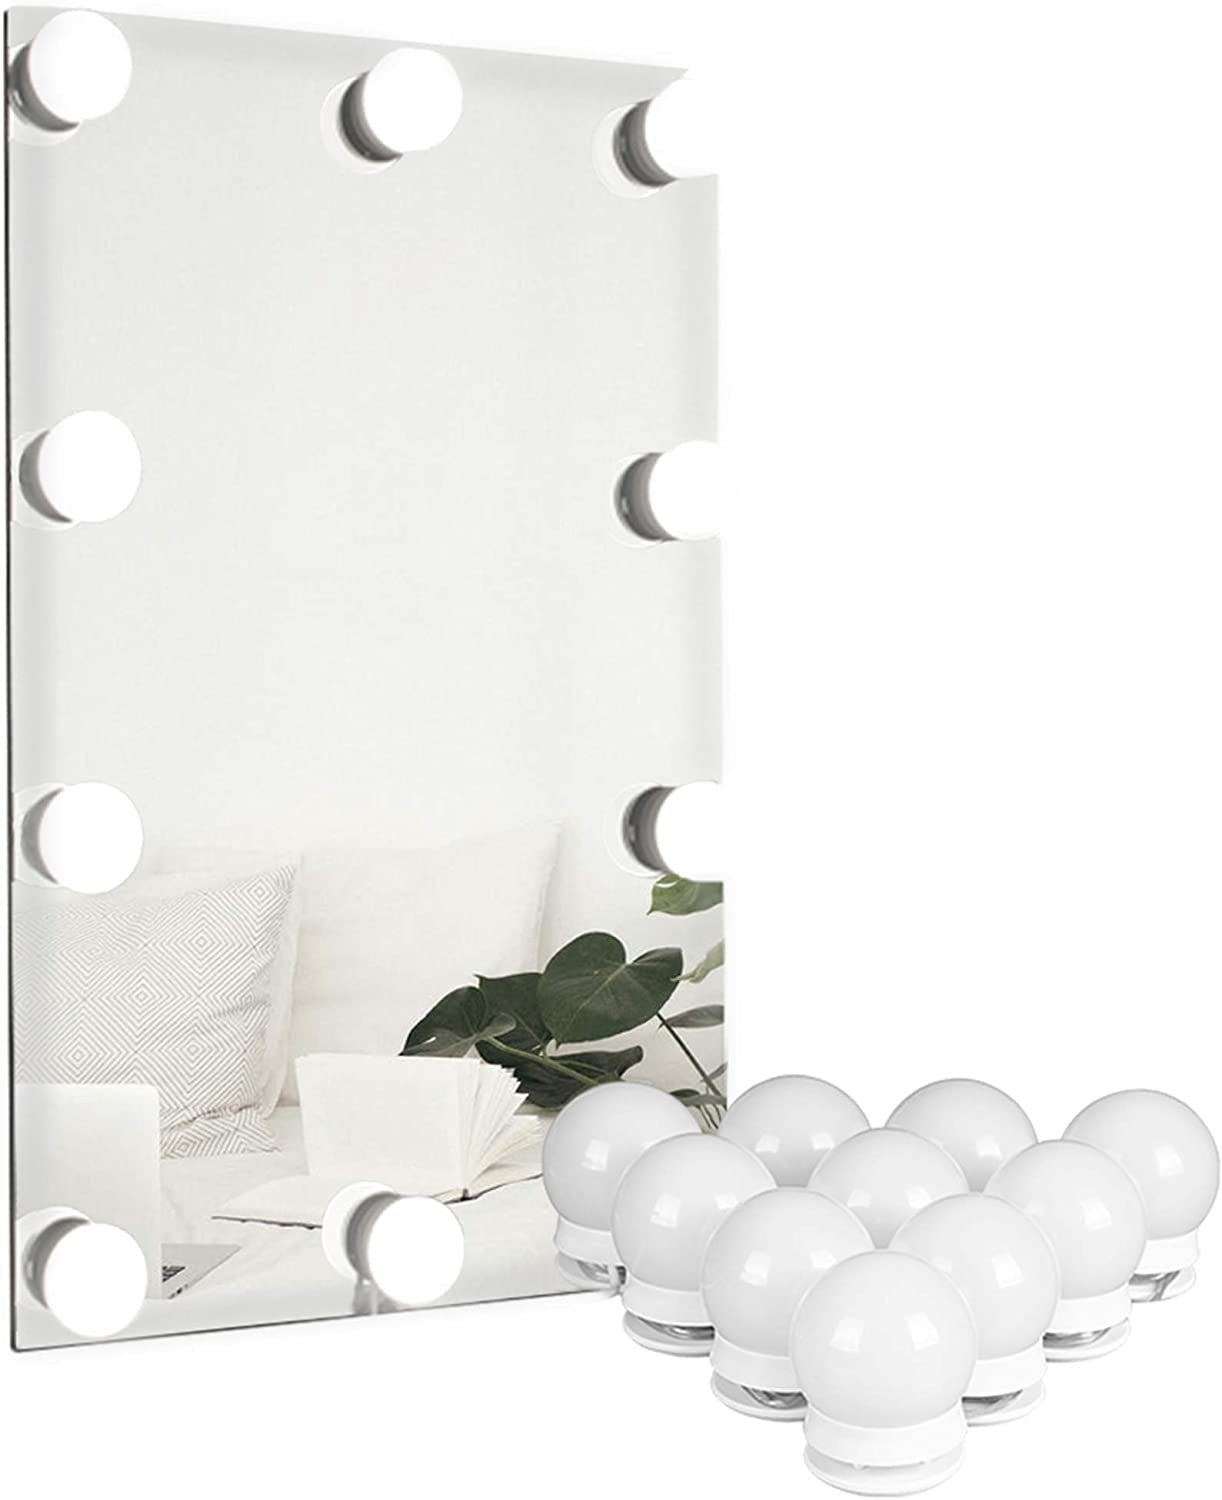 Amazon Com Waneway Vanity Lights For Mirror Diy Hollywood Lighted Makeup Vanity Mirror With Dimmable Lights Stick On Led Mirror Light Kit For Vanity Set Plug In Makeup Light For Bathroom Wall Mirror